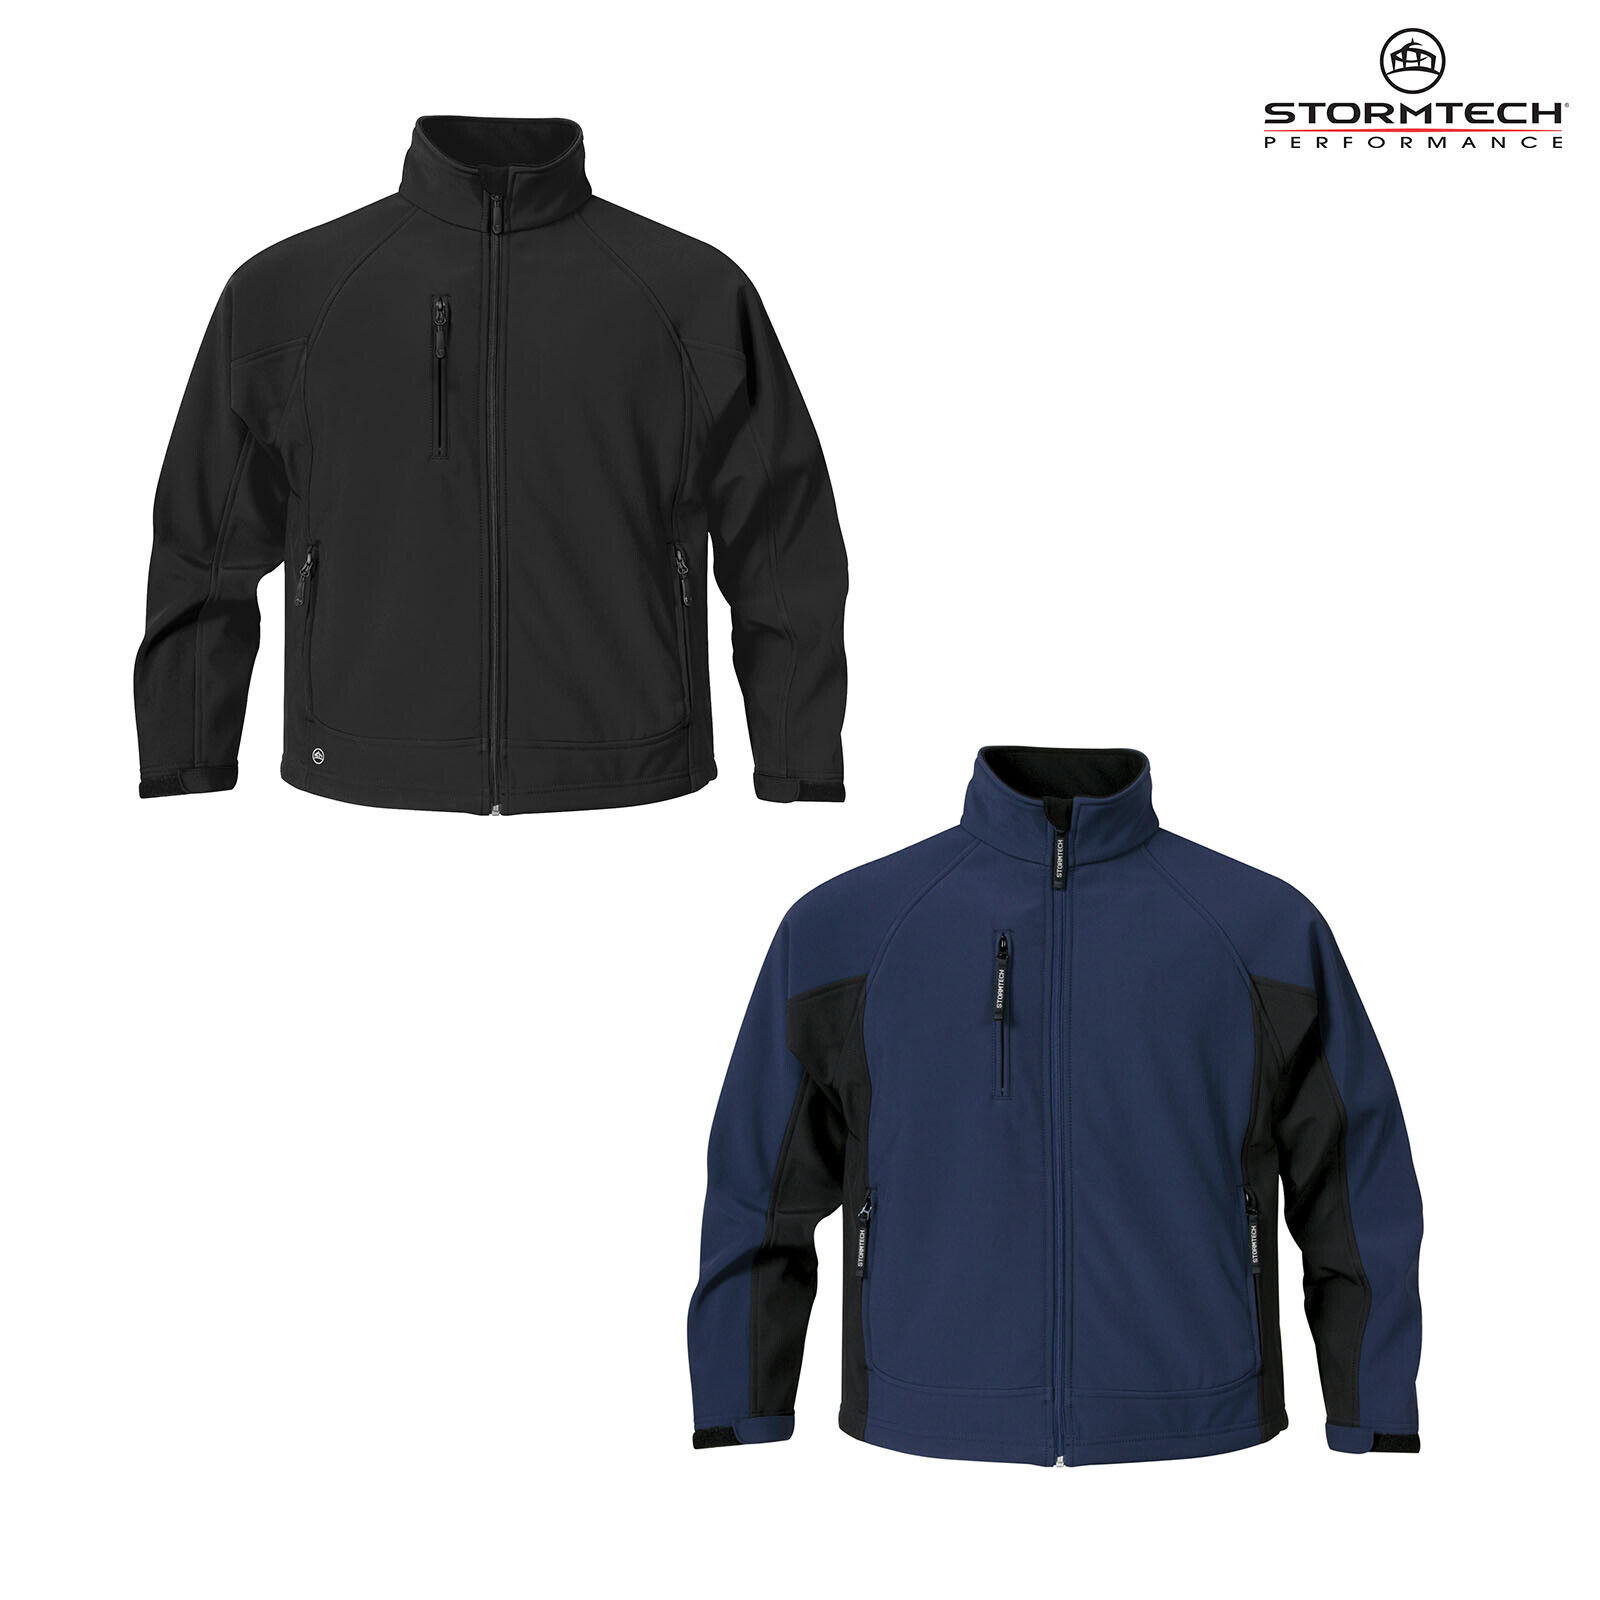 Stormtech mannen's Bonded Zippenetwerk Jasje CXJ-1 --Water Repellent Warm Fleece Coat